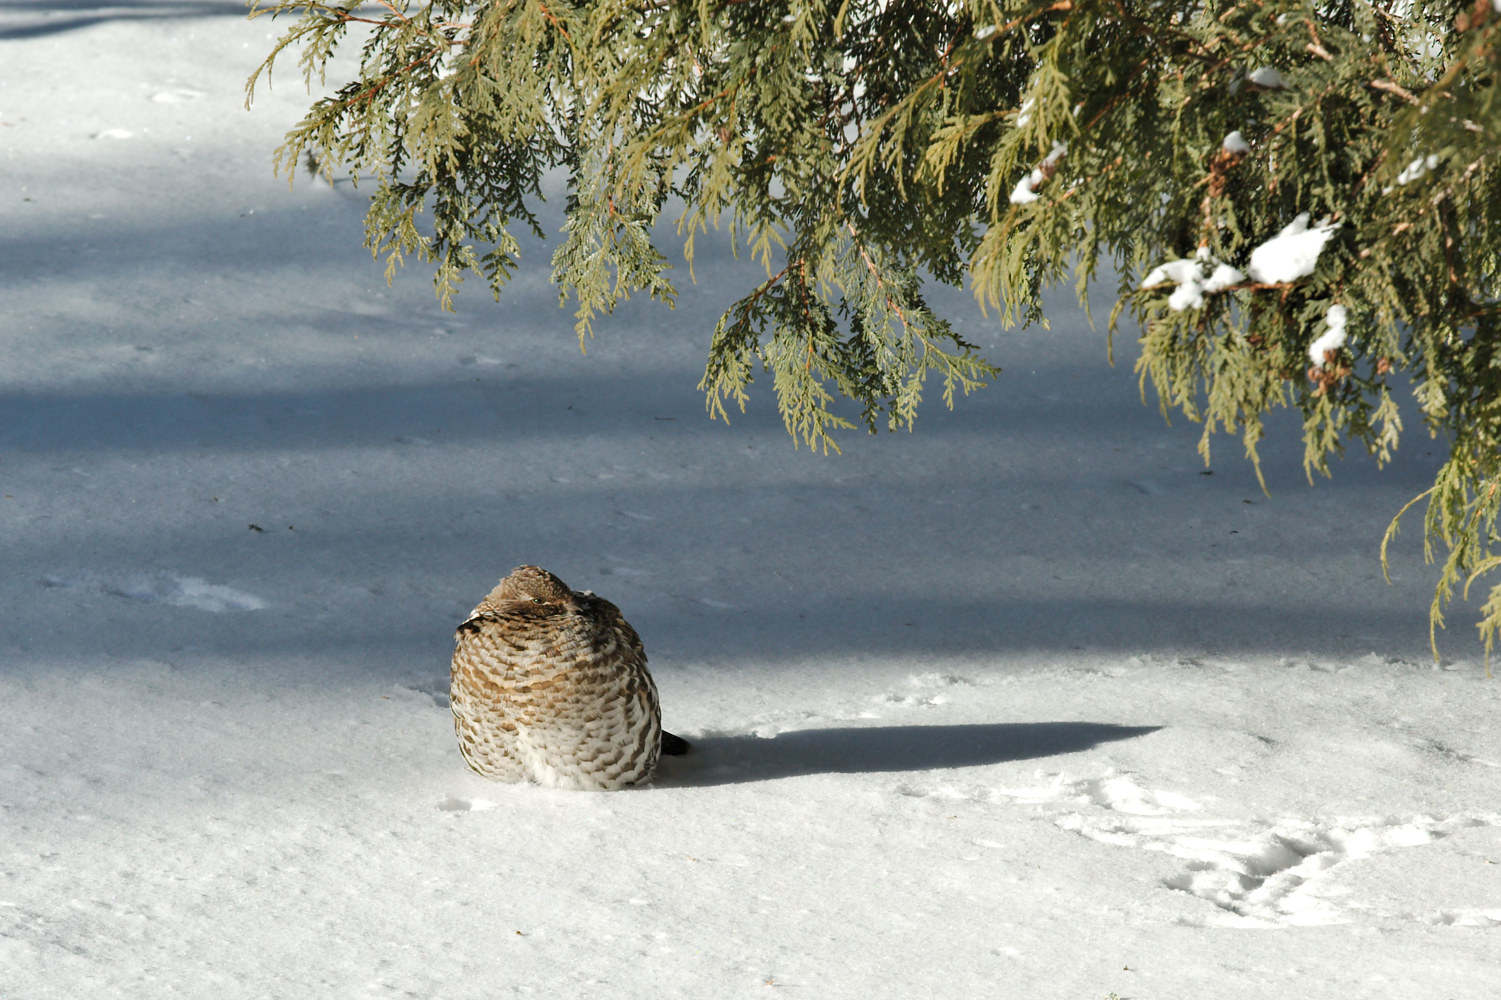 Ruffed Grouse Sunning In The Snow On a Very Cold Day by Marc Brisson